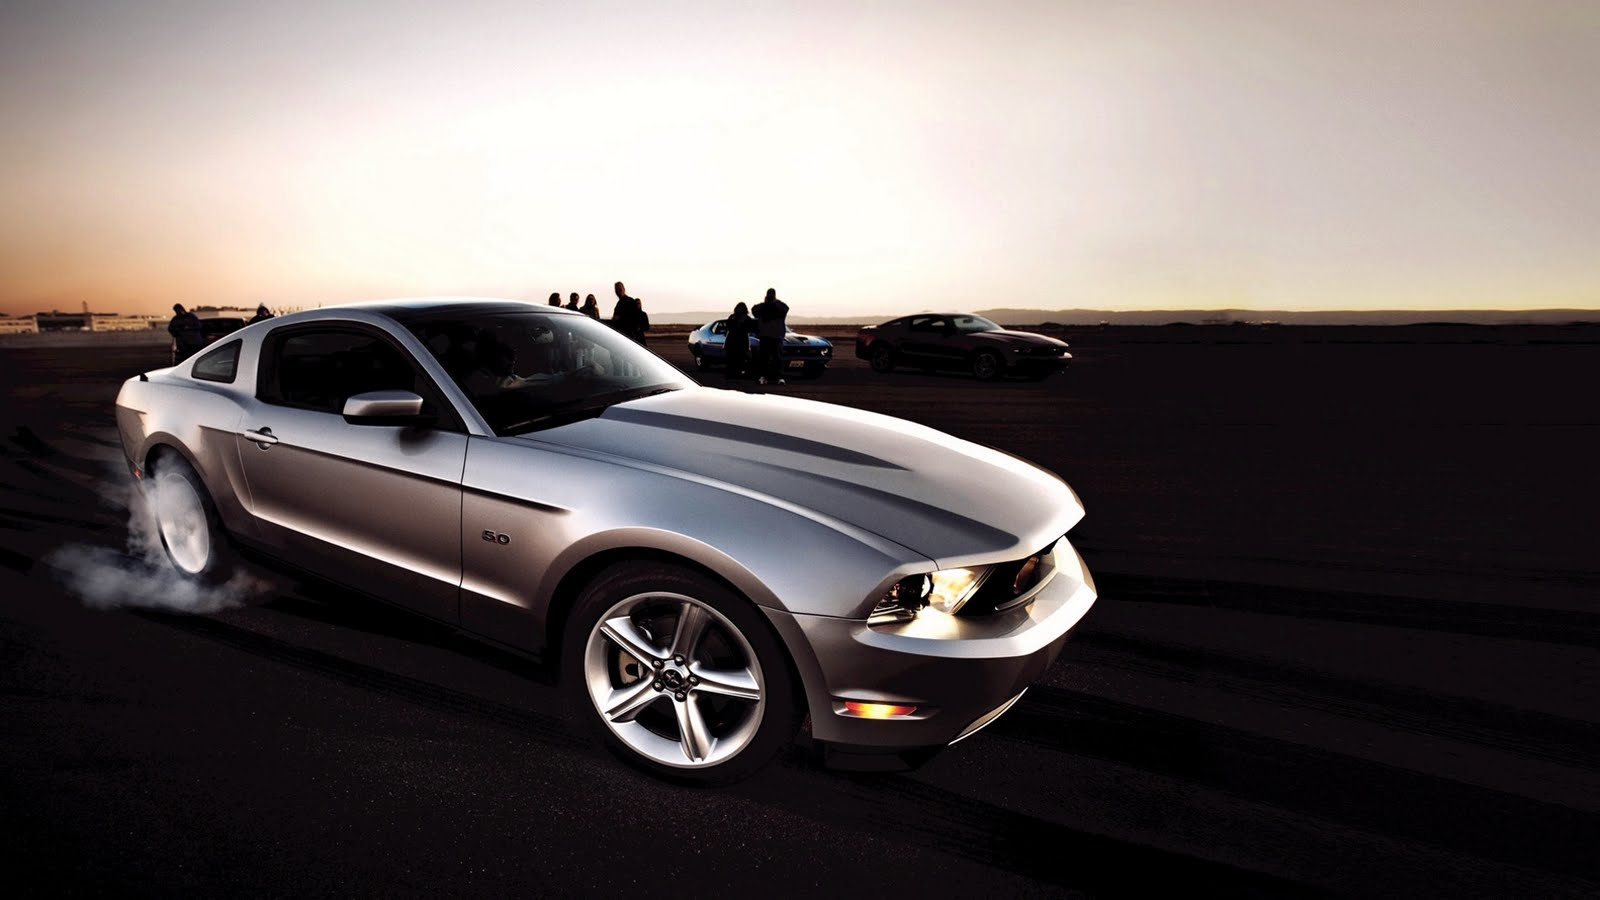 HD Wallpapers Ford Mustang HD Wallpaper   Set 20 1600x900